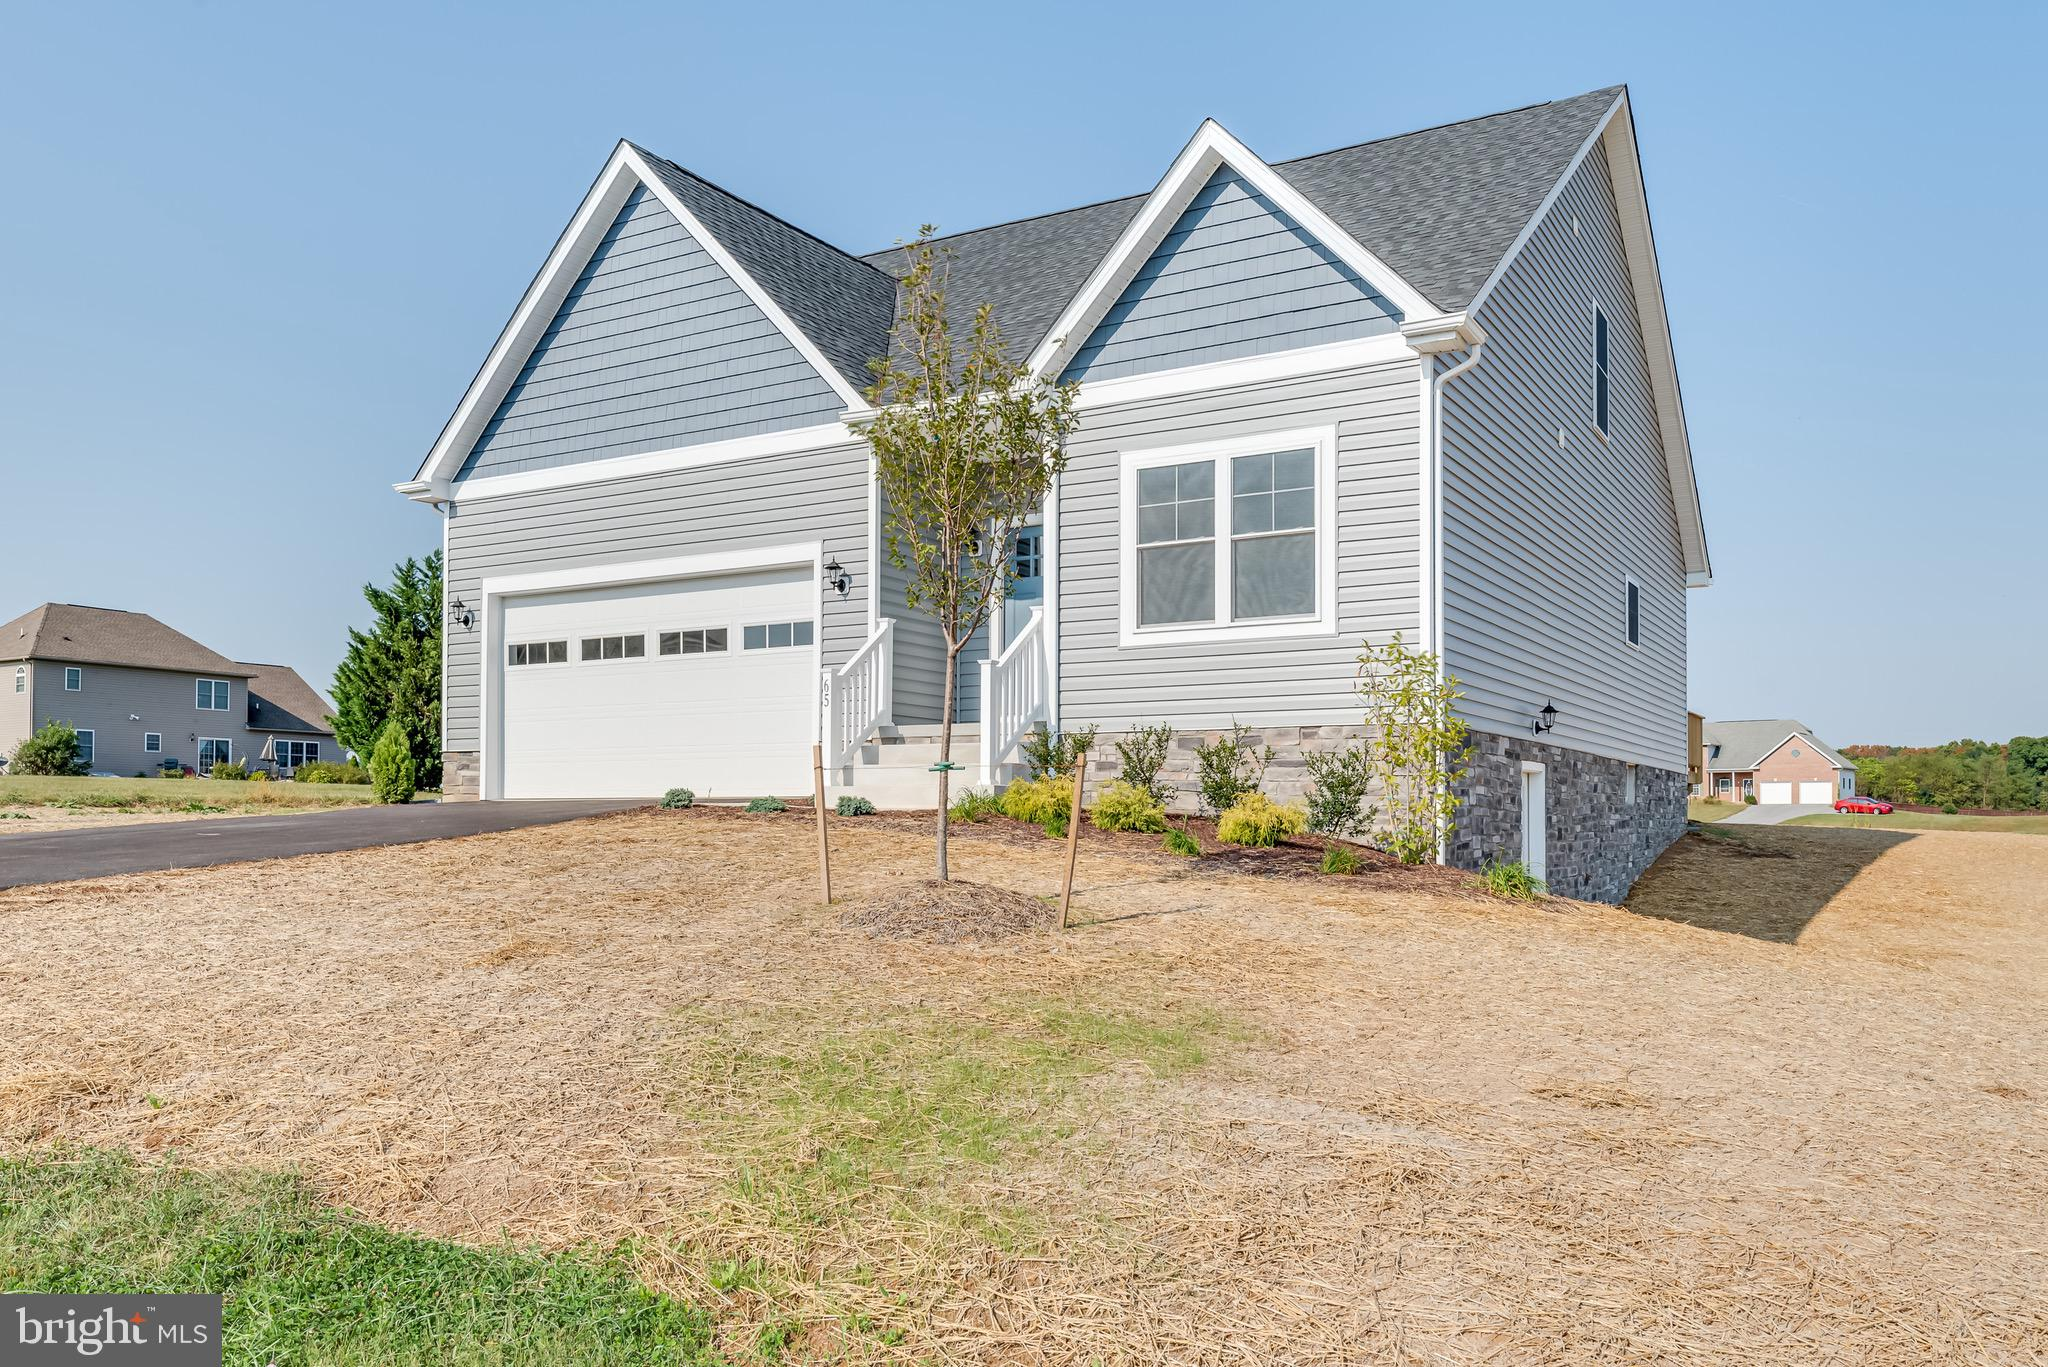 You will FEEL the craftsmanship put into this beautiful home the second you walk through the door! T